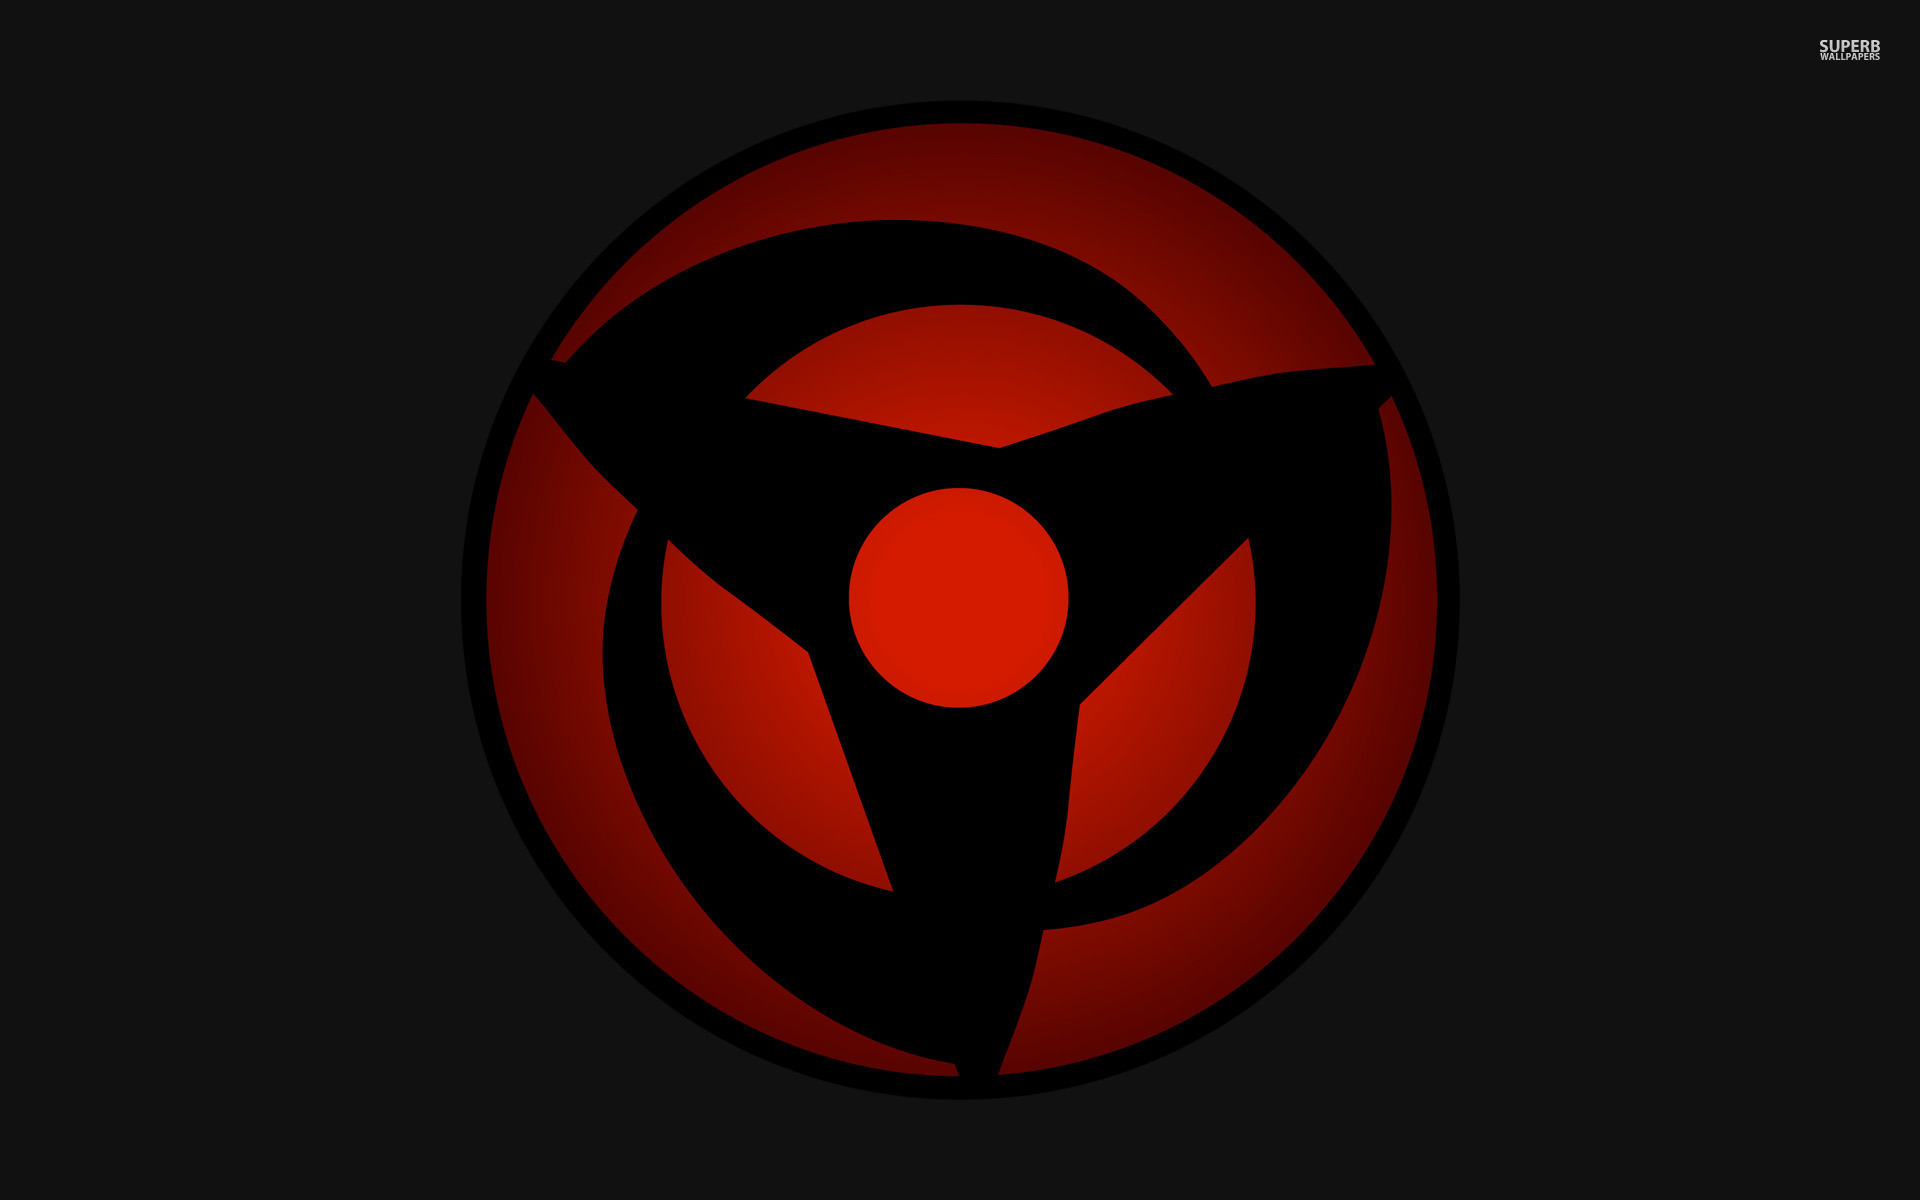 A44 Naruto sharingan anime HD Desktop background images pictures wallpapers downloads